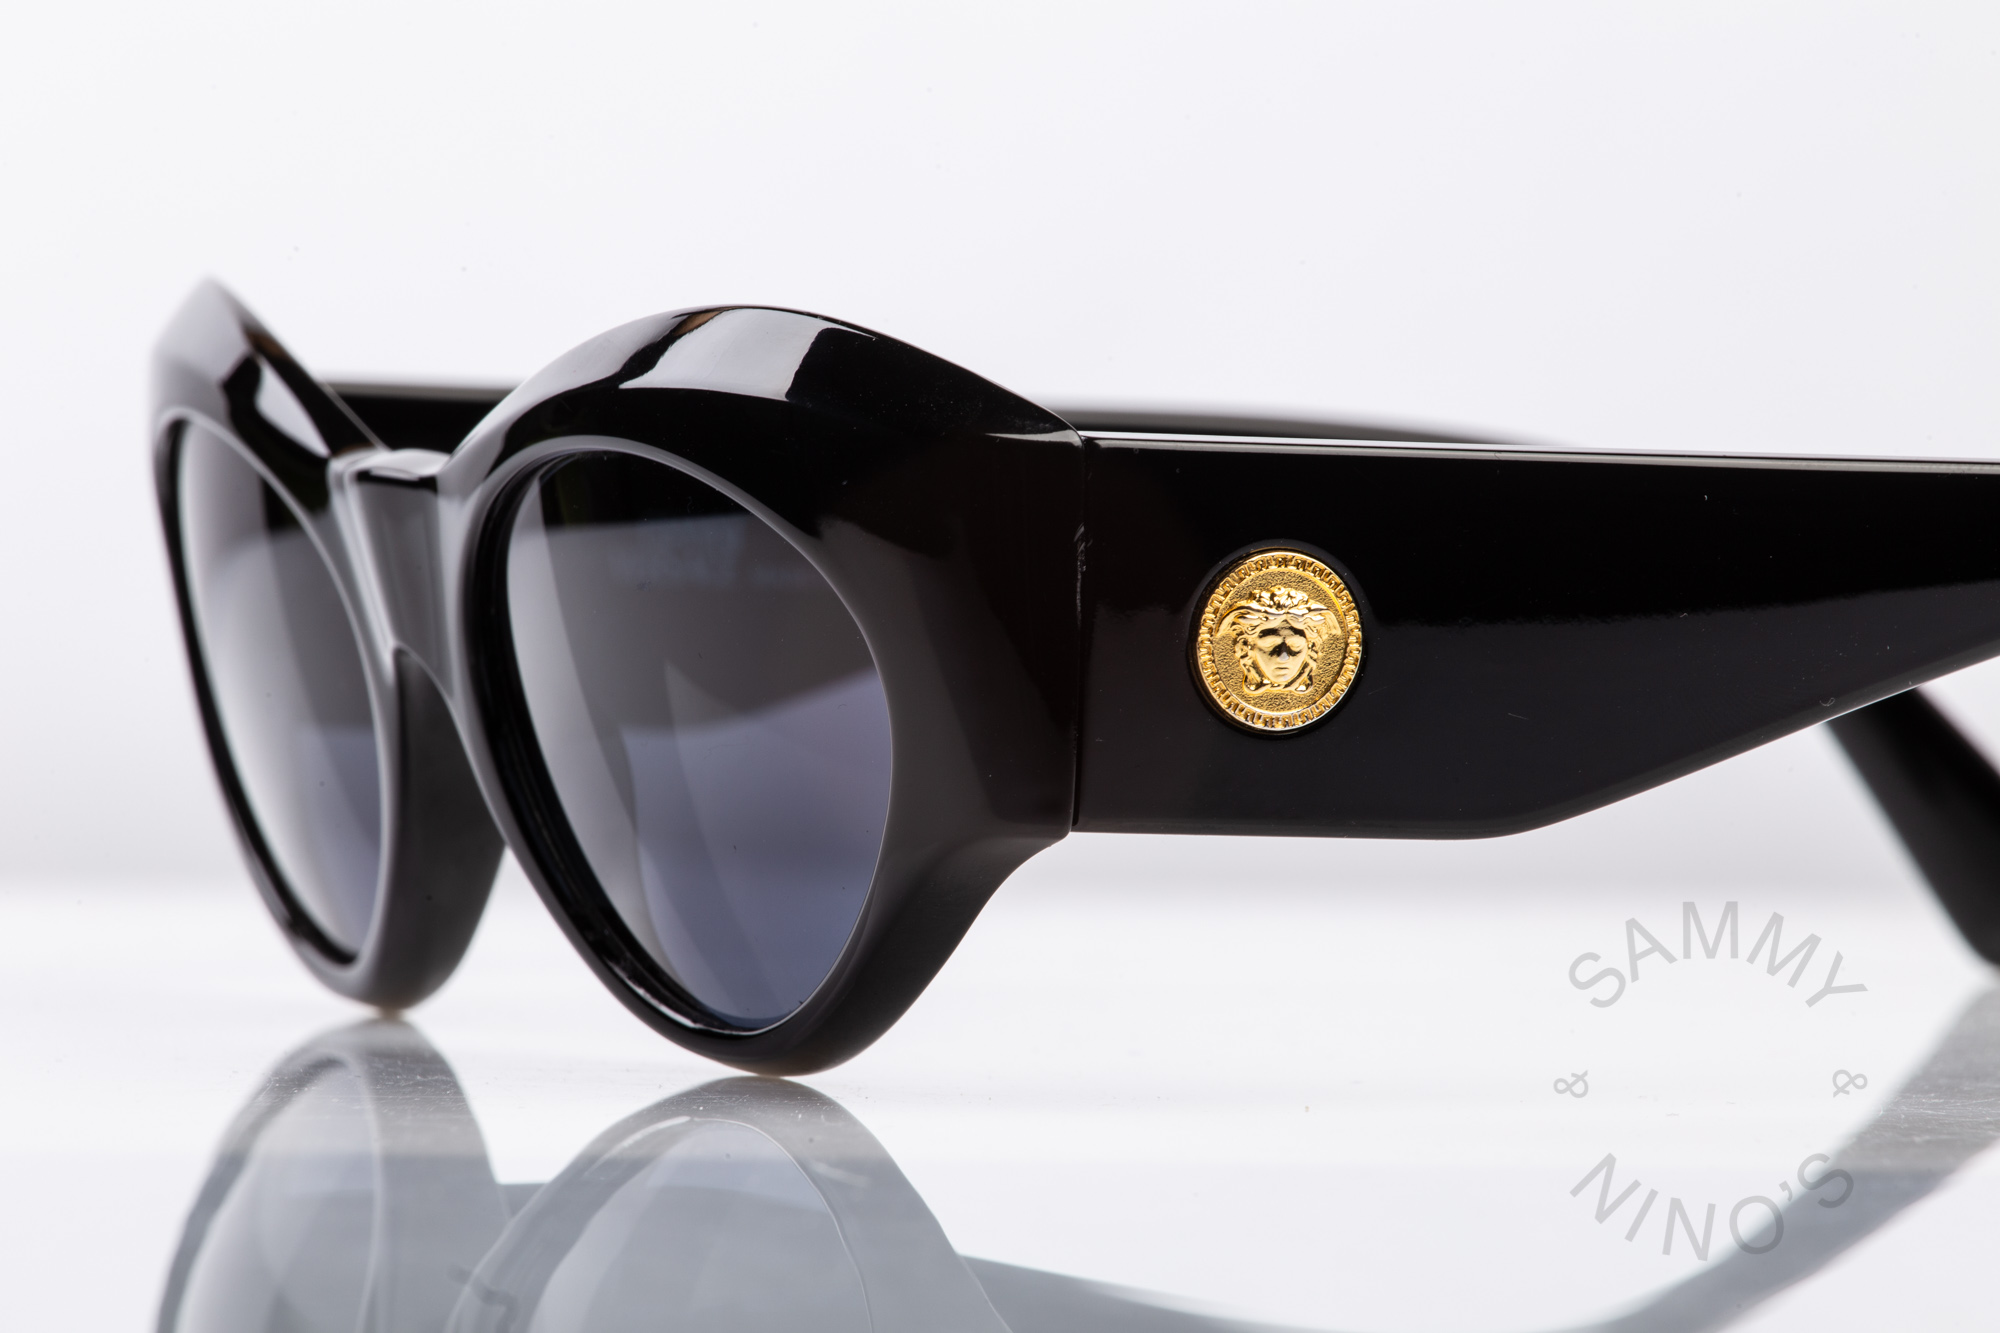 OCCHIALI GIANNI VERSACE 374 867 VINTAGE SUNGLASSES NEW OLD STOCK 1990/'S